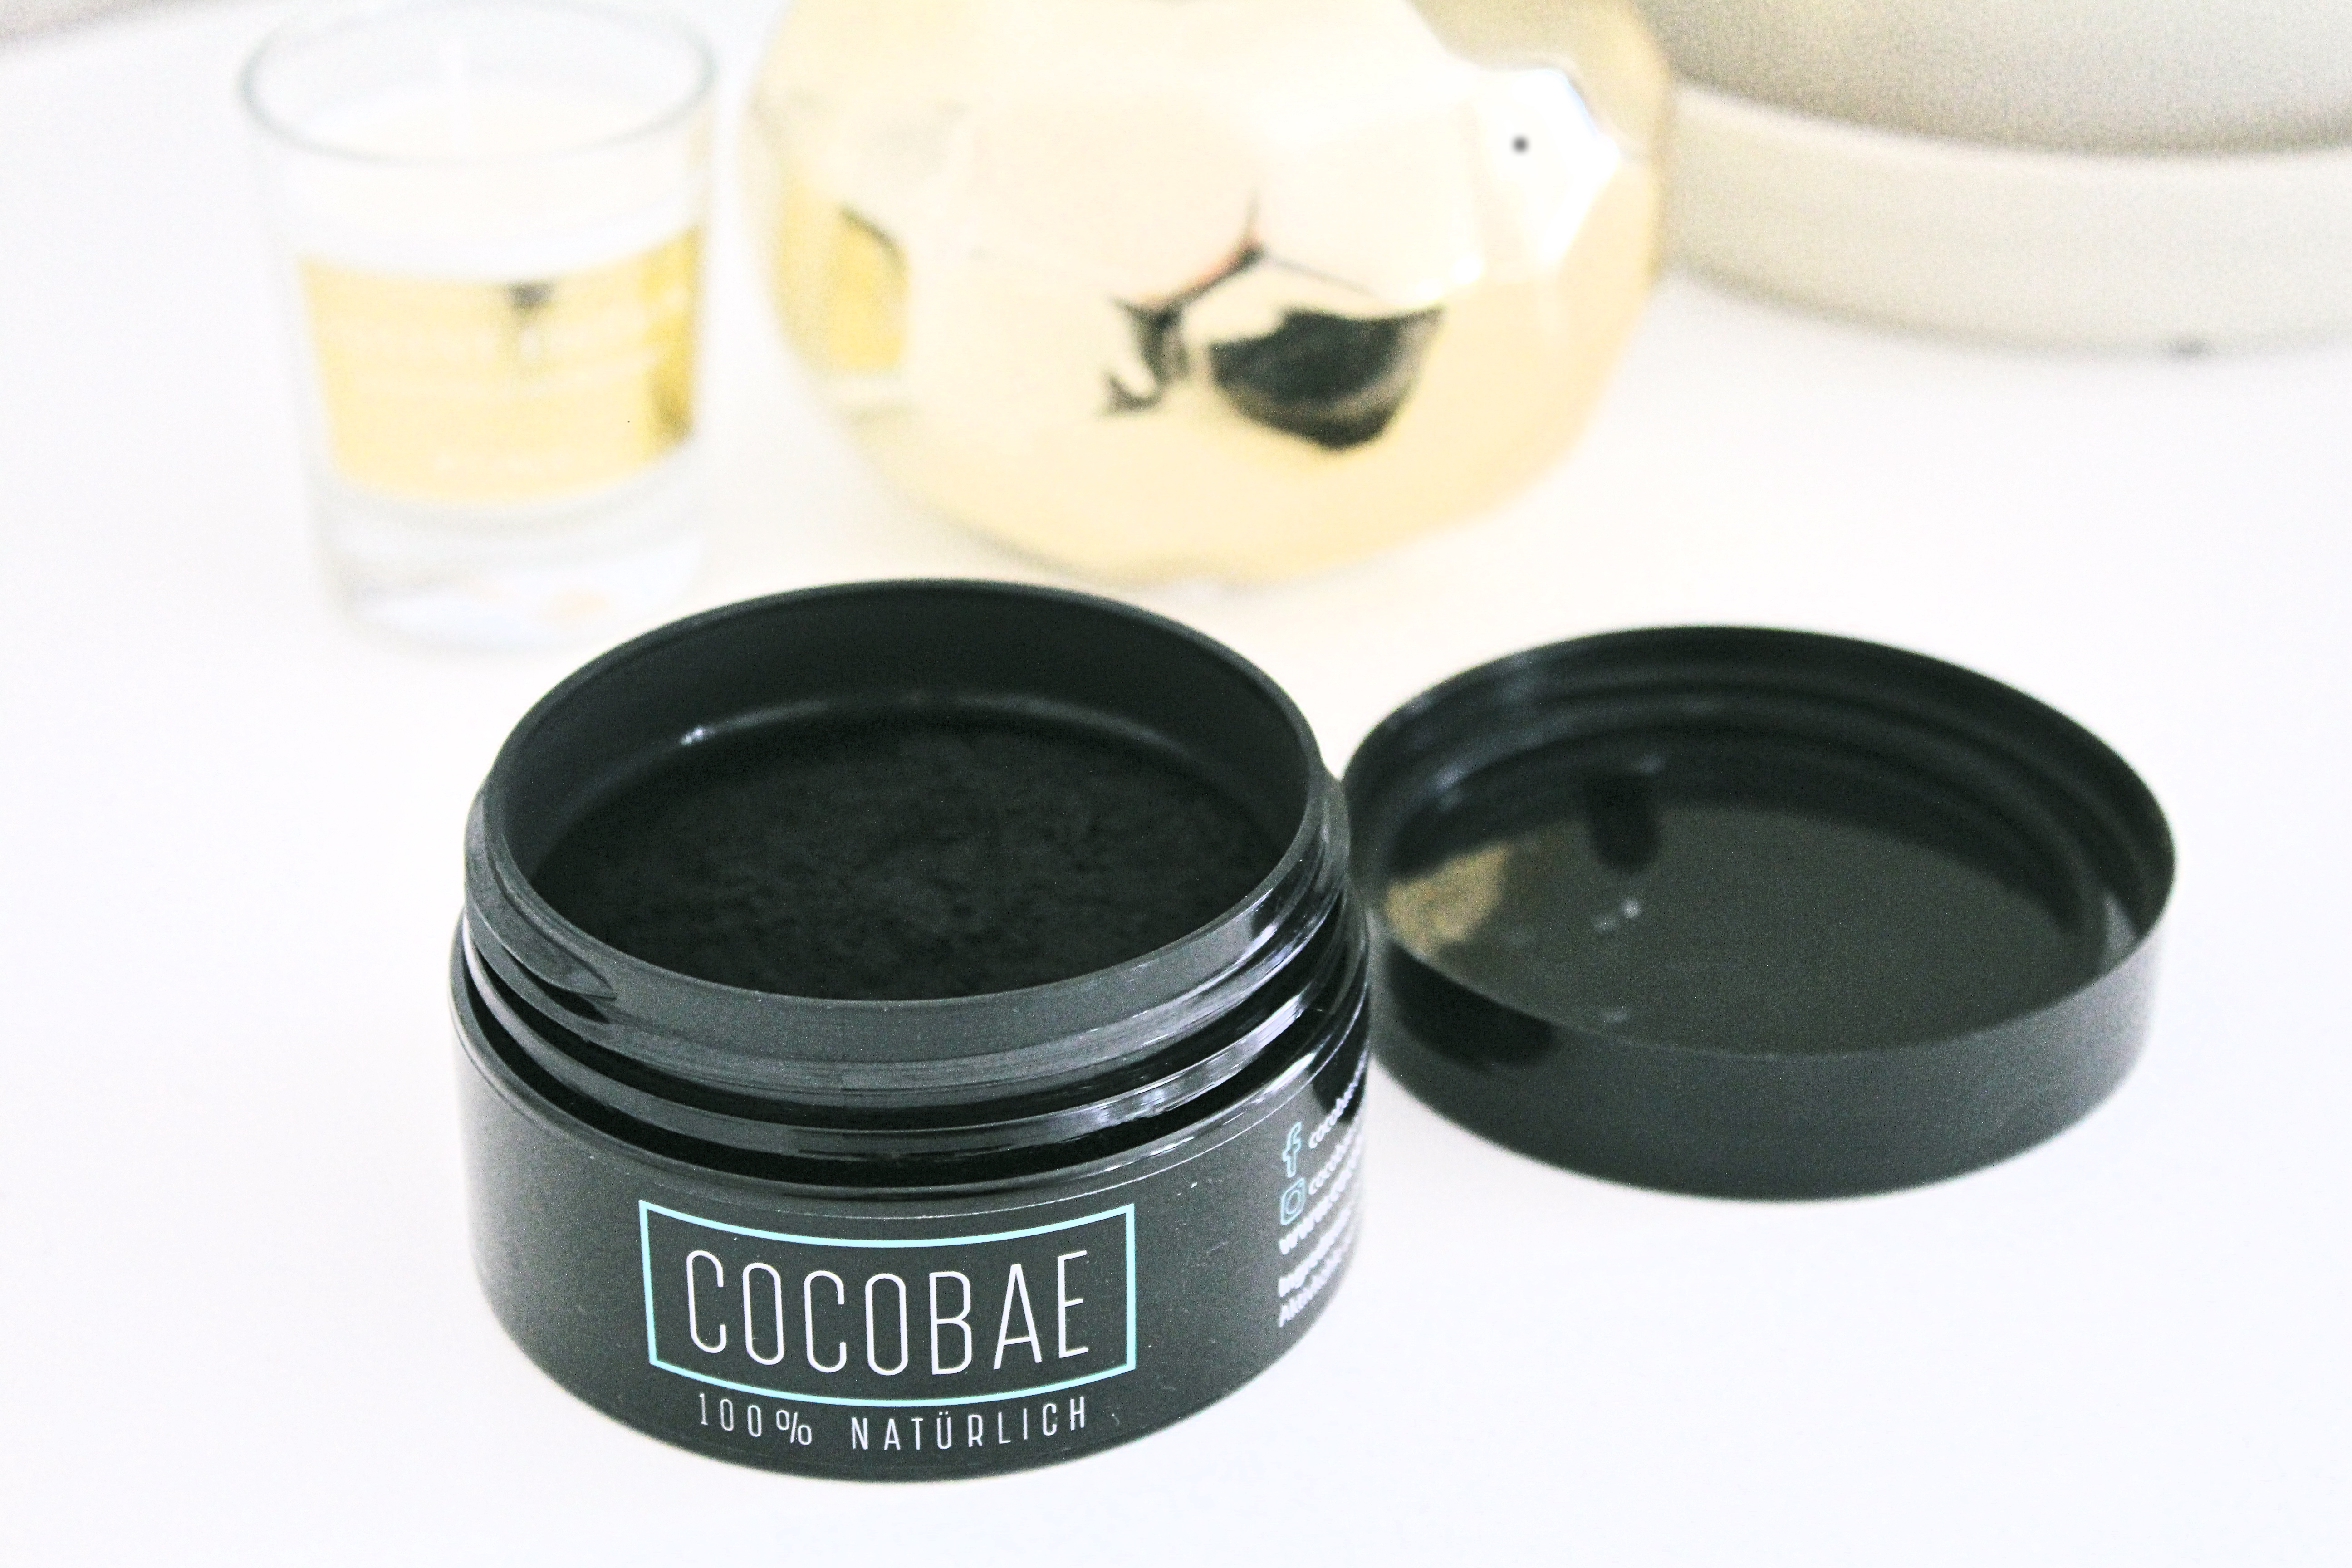 Cocobae Teeth Whitening